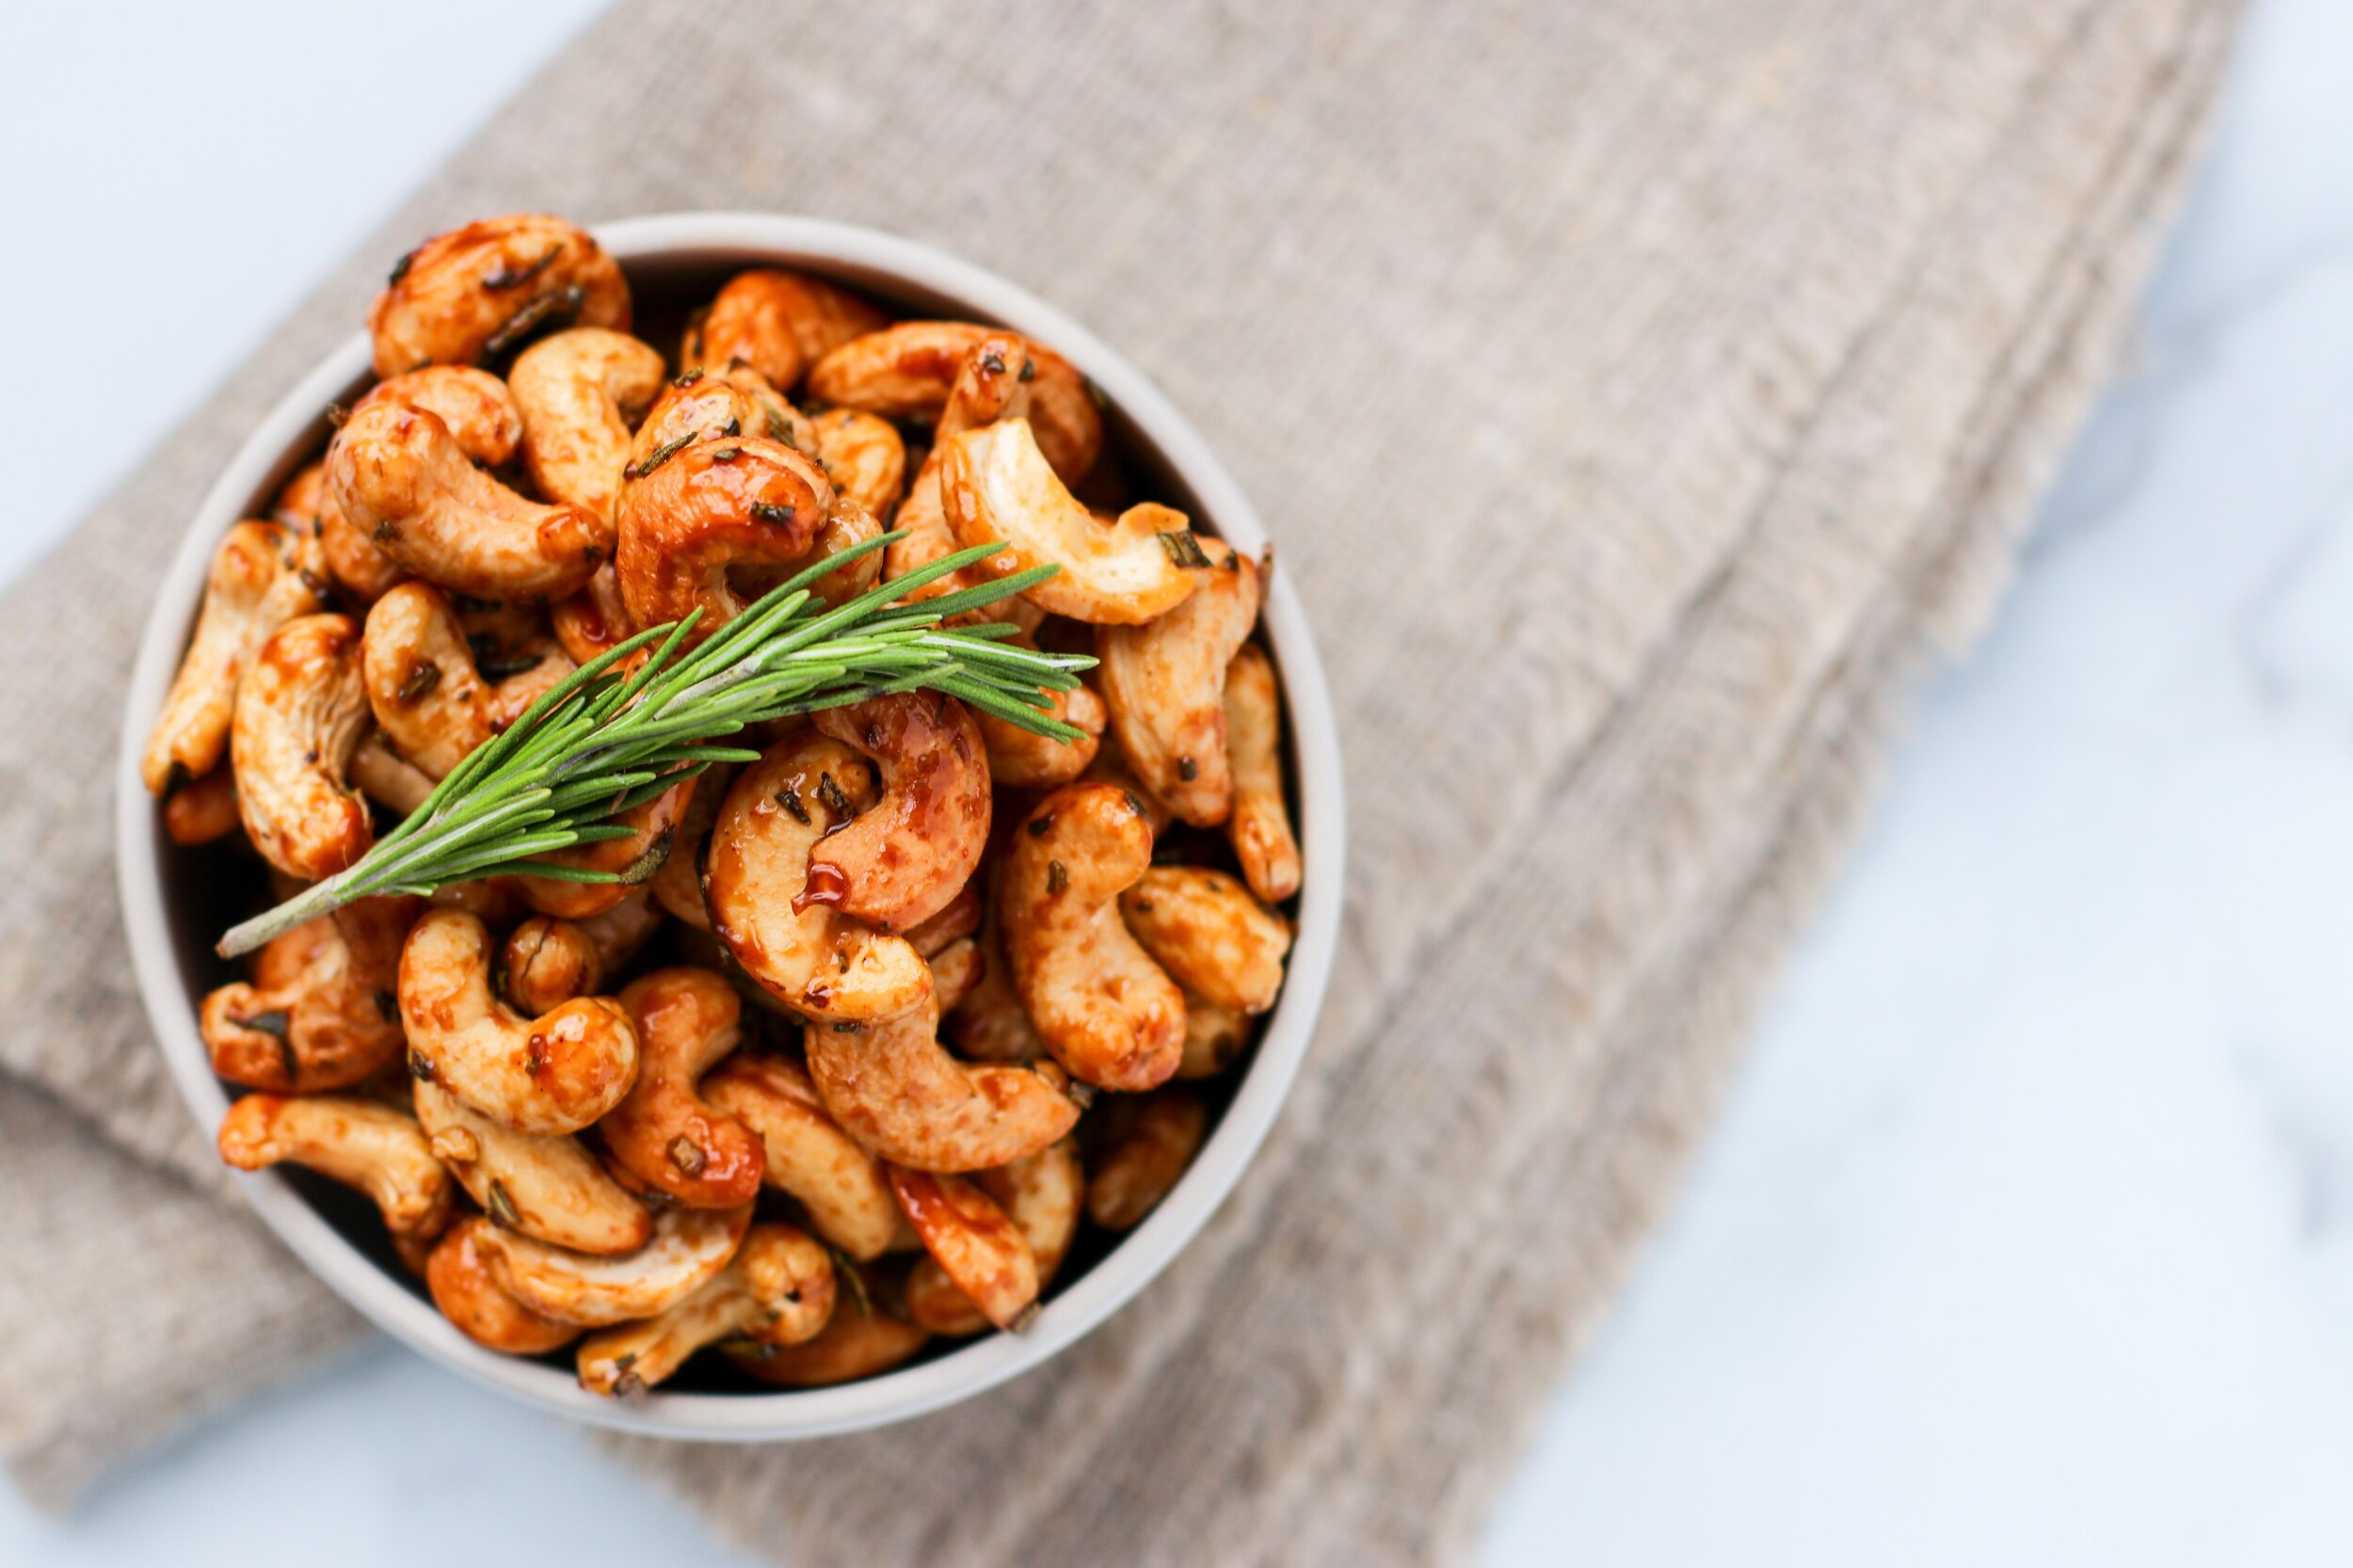 Rosemary and Olive Oil Roasted Cashews Recipe Rosemary and Olive Oil Roasted Cashews Recipe new pics